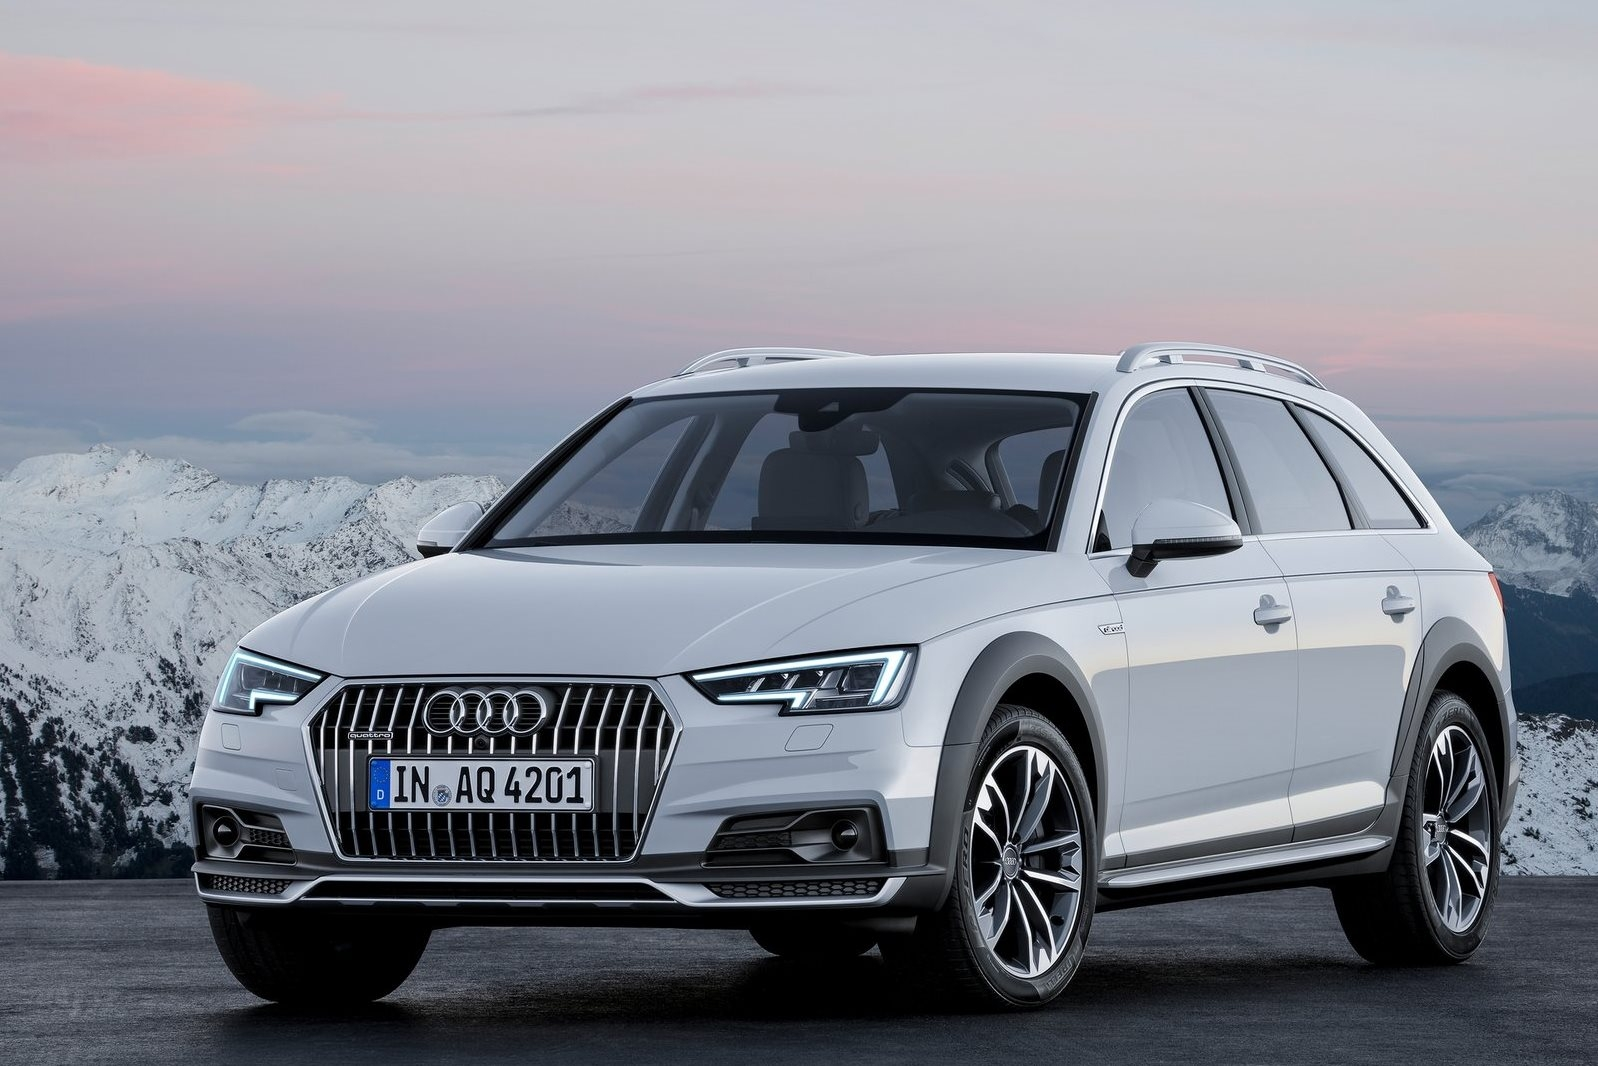 2017 Audi allroad quattro 2.7T photo - 1